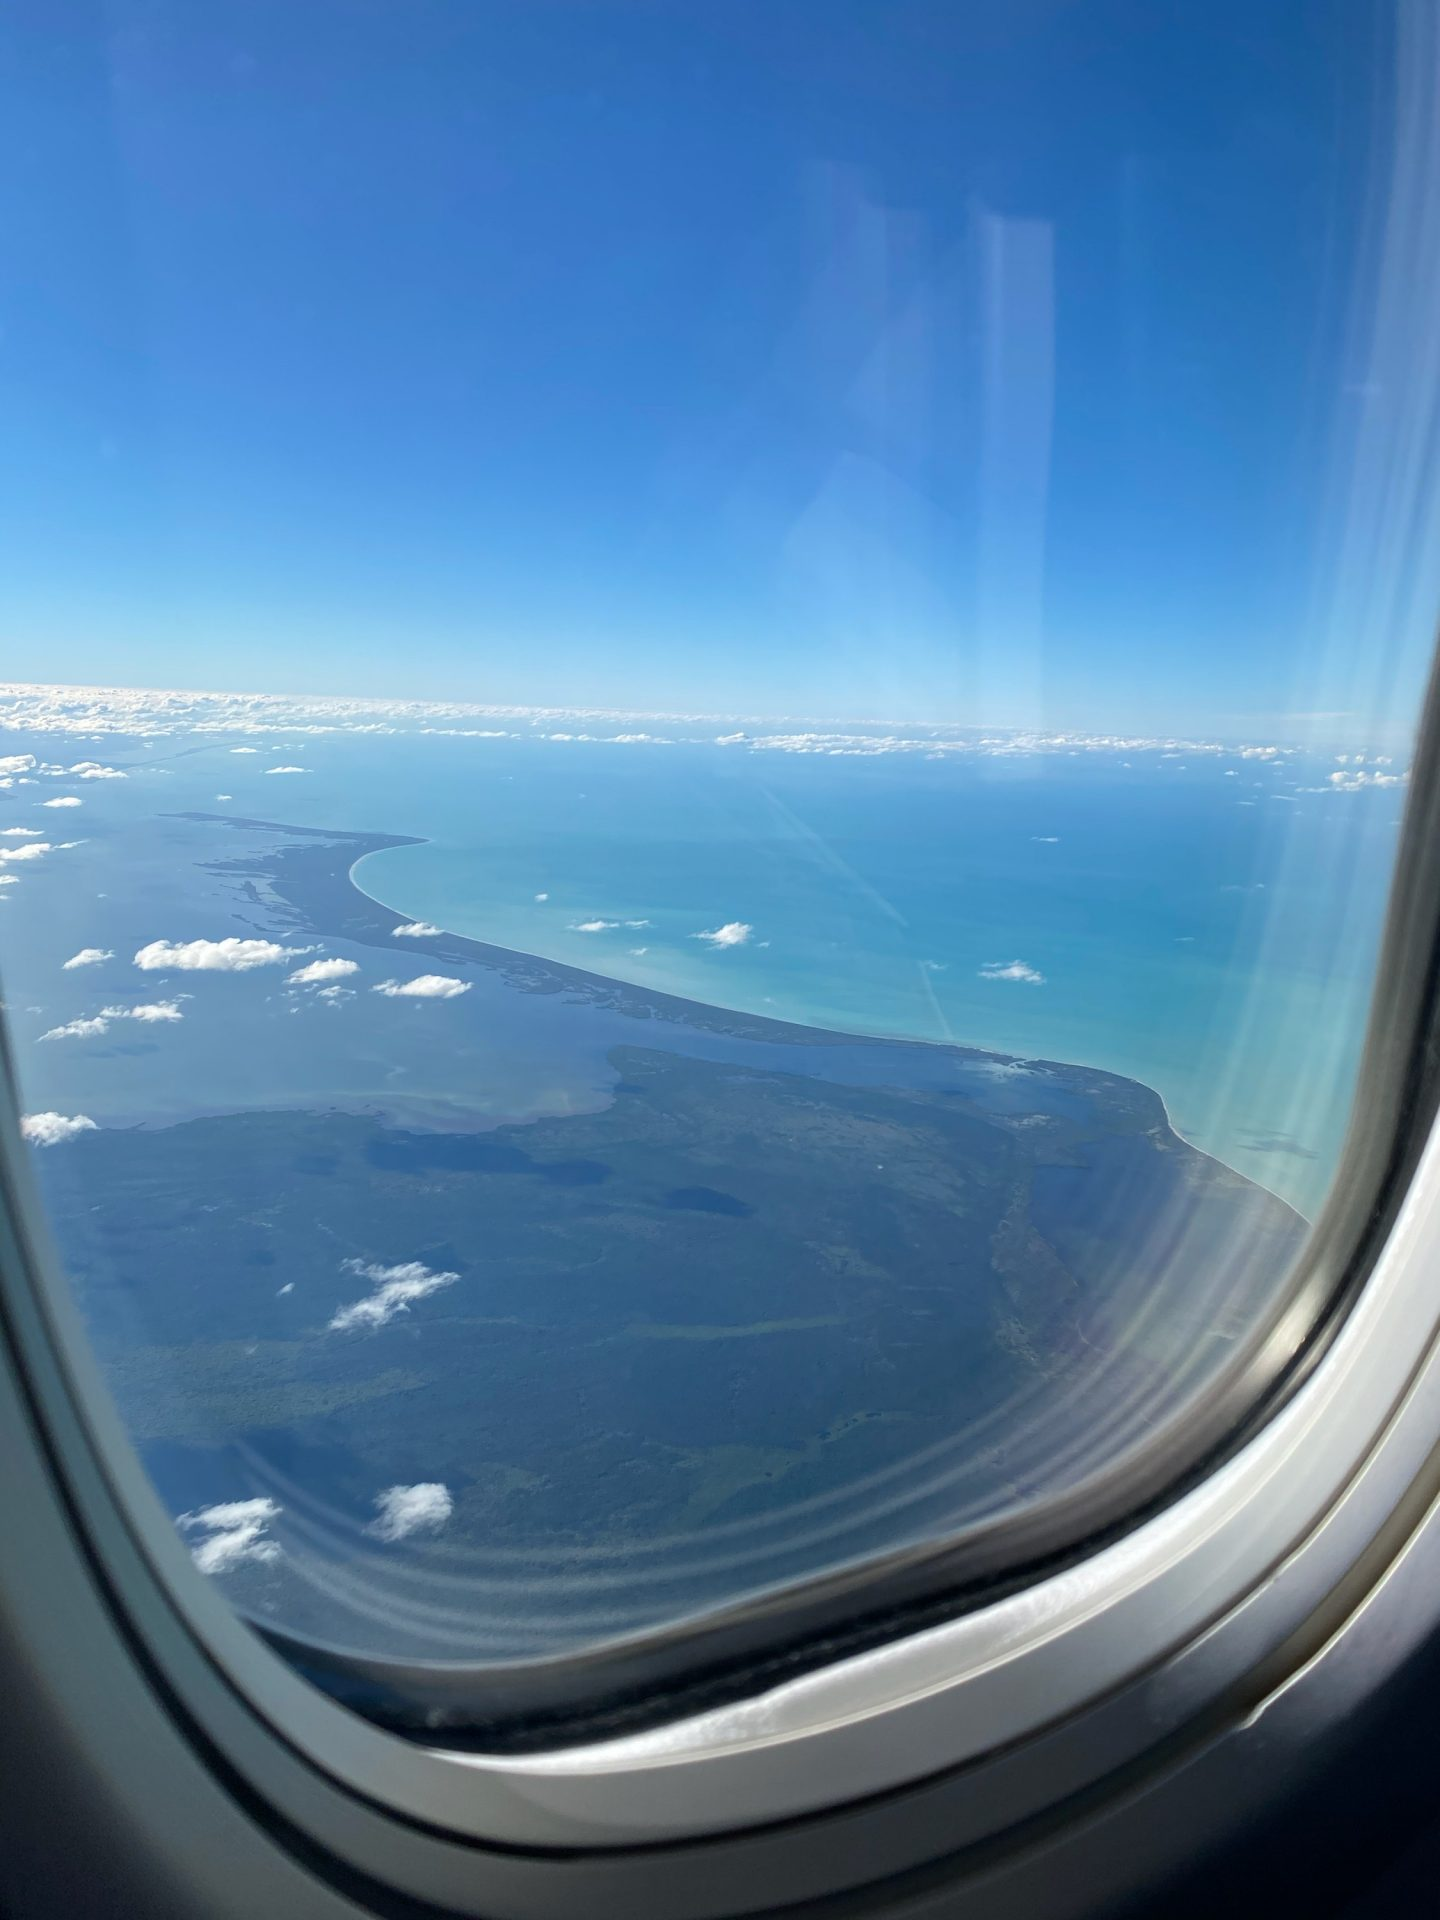 Looking out of a plane window to see clouds and a tropical blue ocean